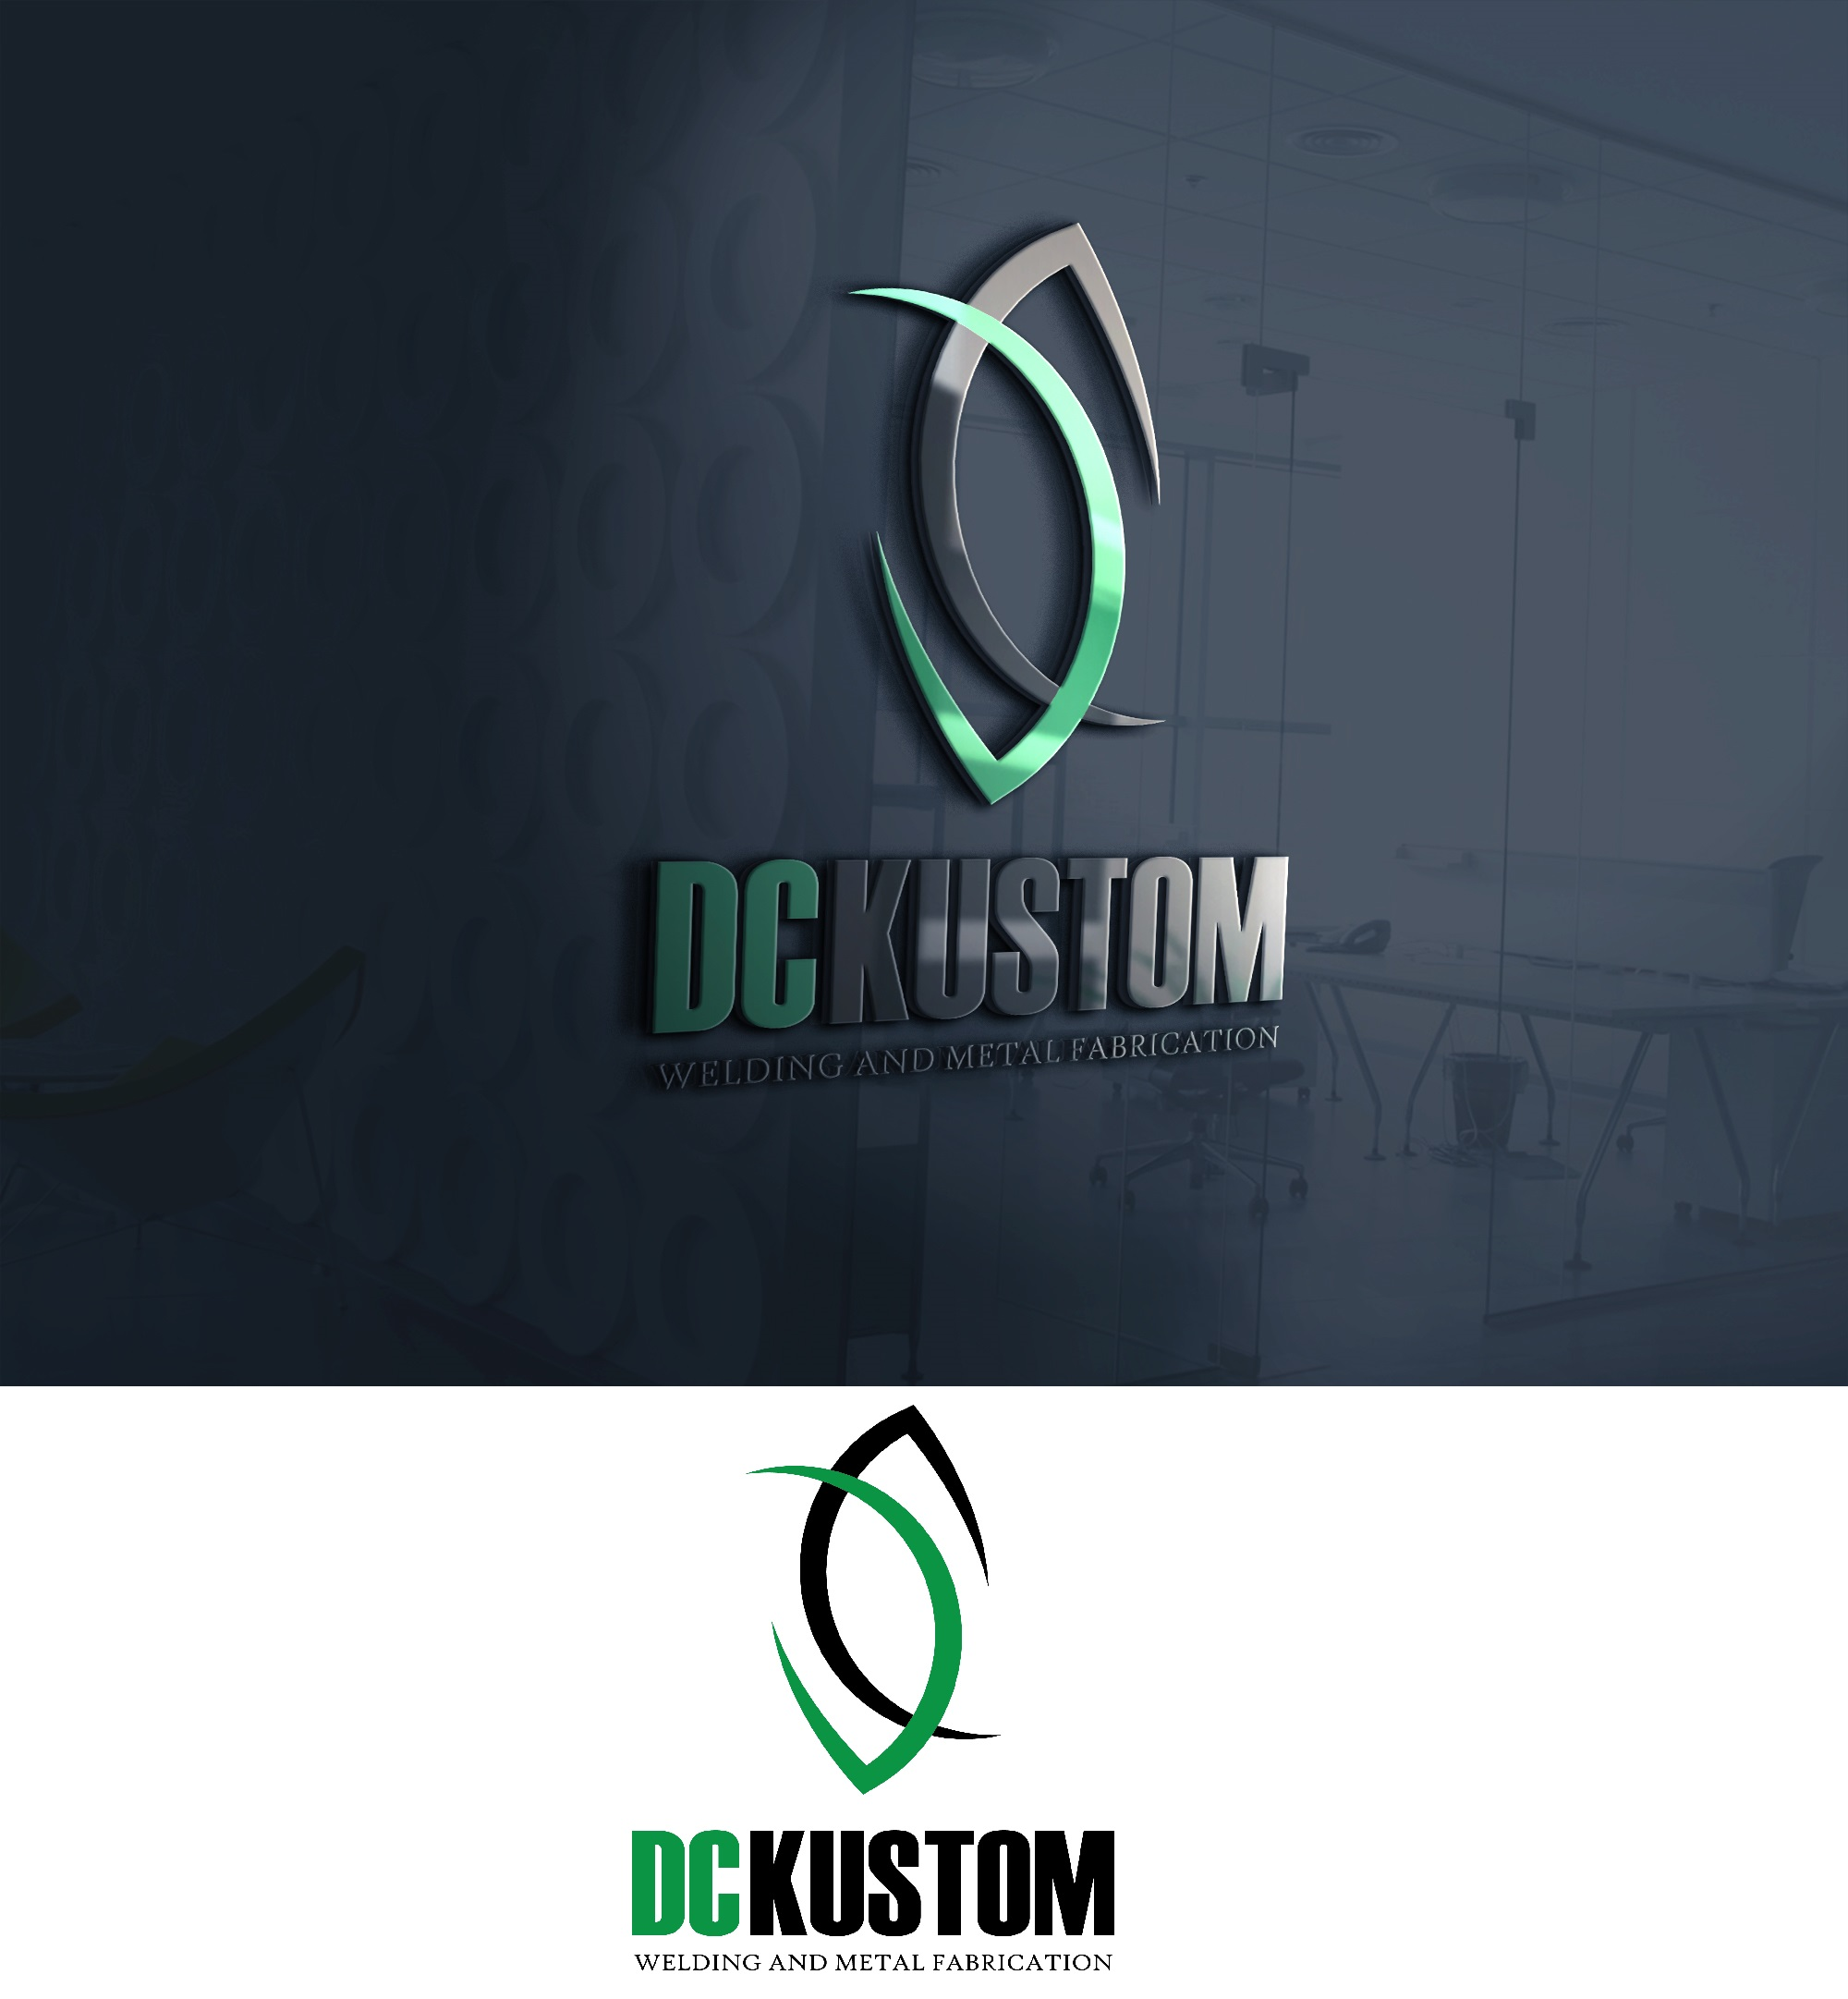 Logo Design by Ivan Aguilon - Entry No. 152 in the Logo Design Contest Imaginative Logo Design for DC KUSTOM WELDING & METAL FABRICATION.